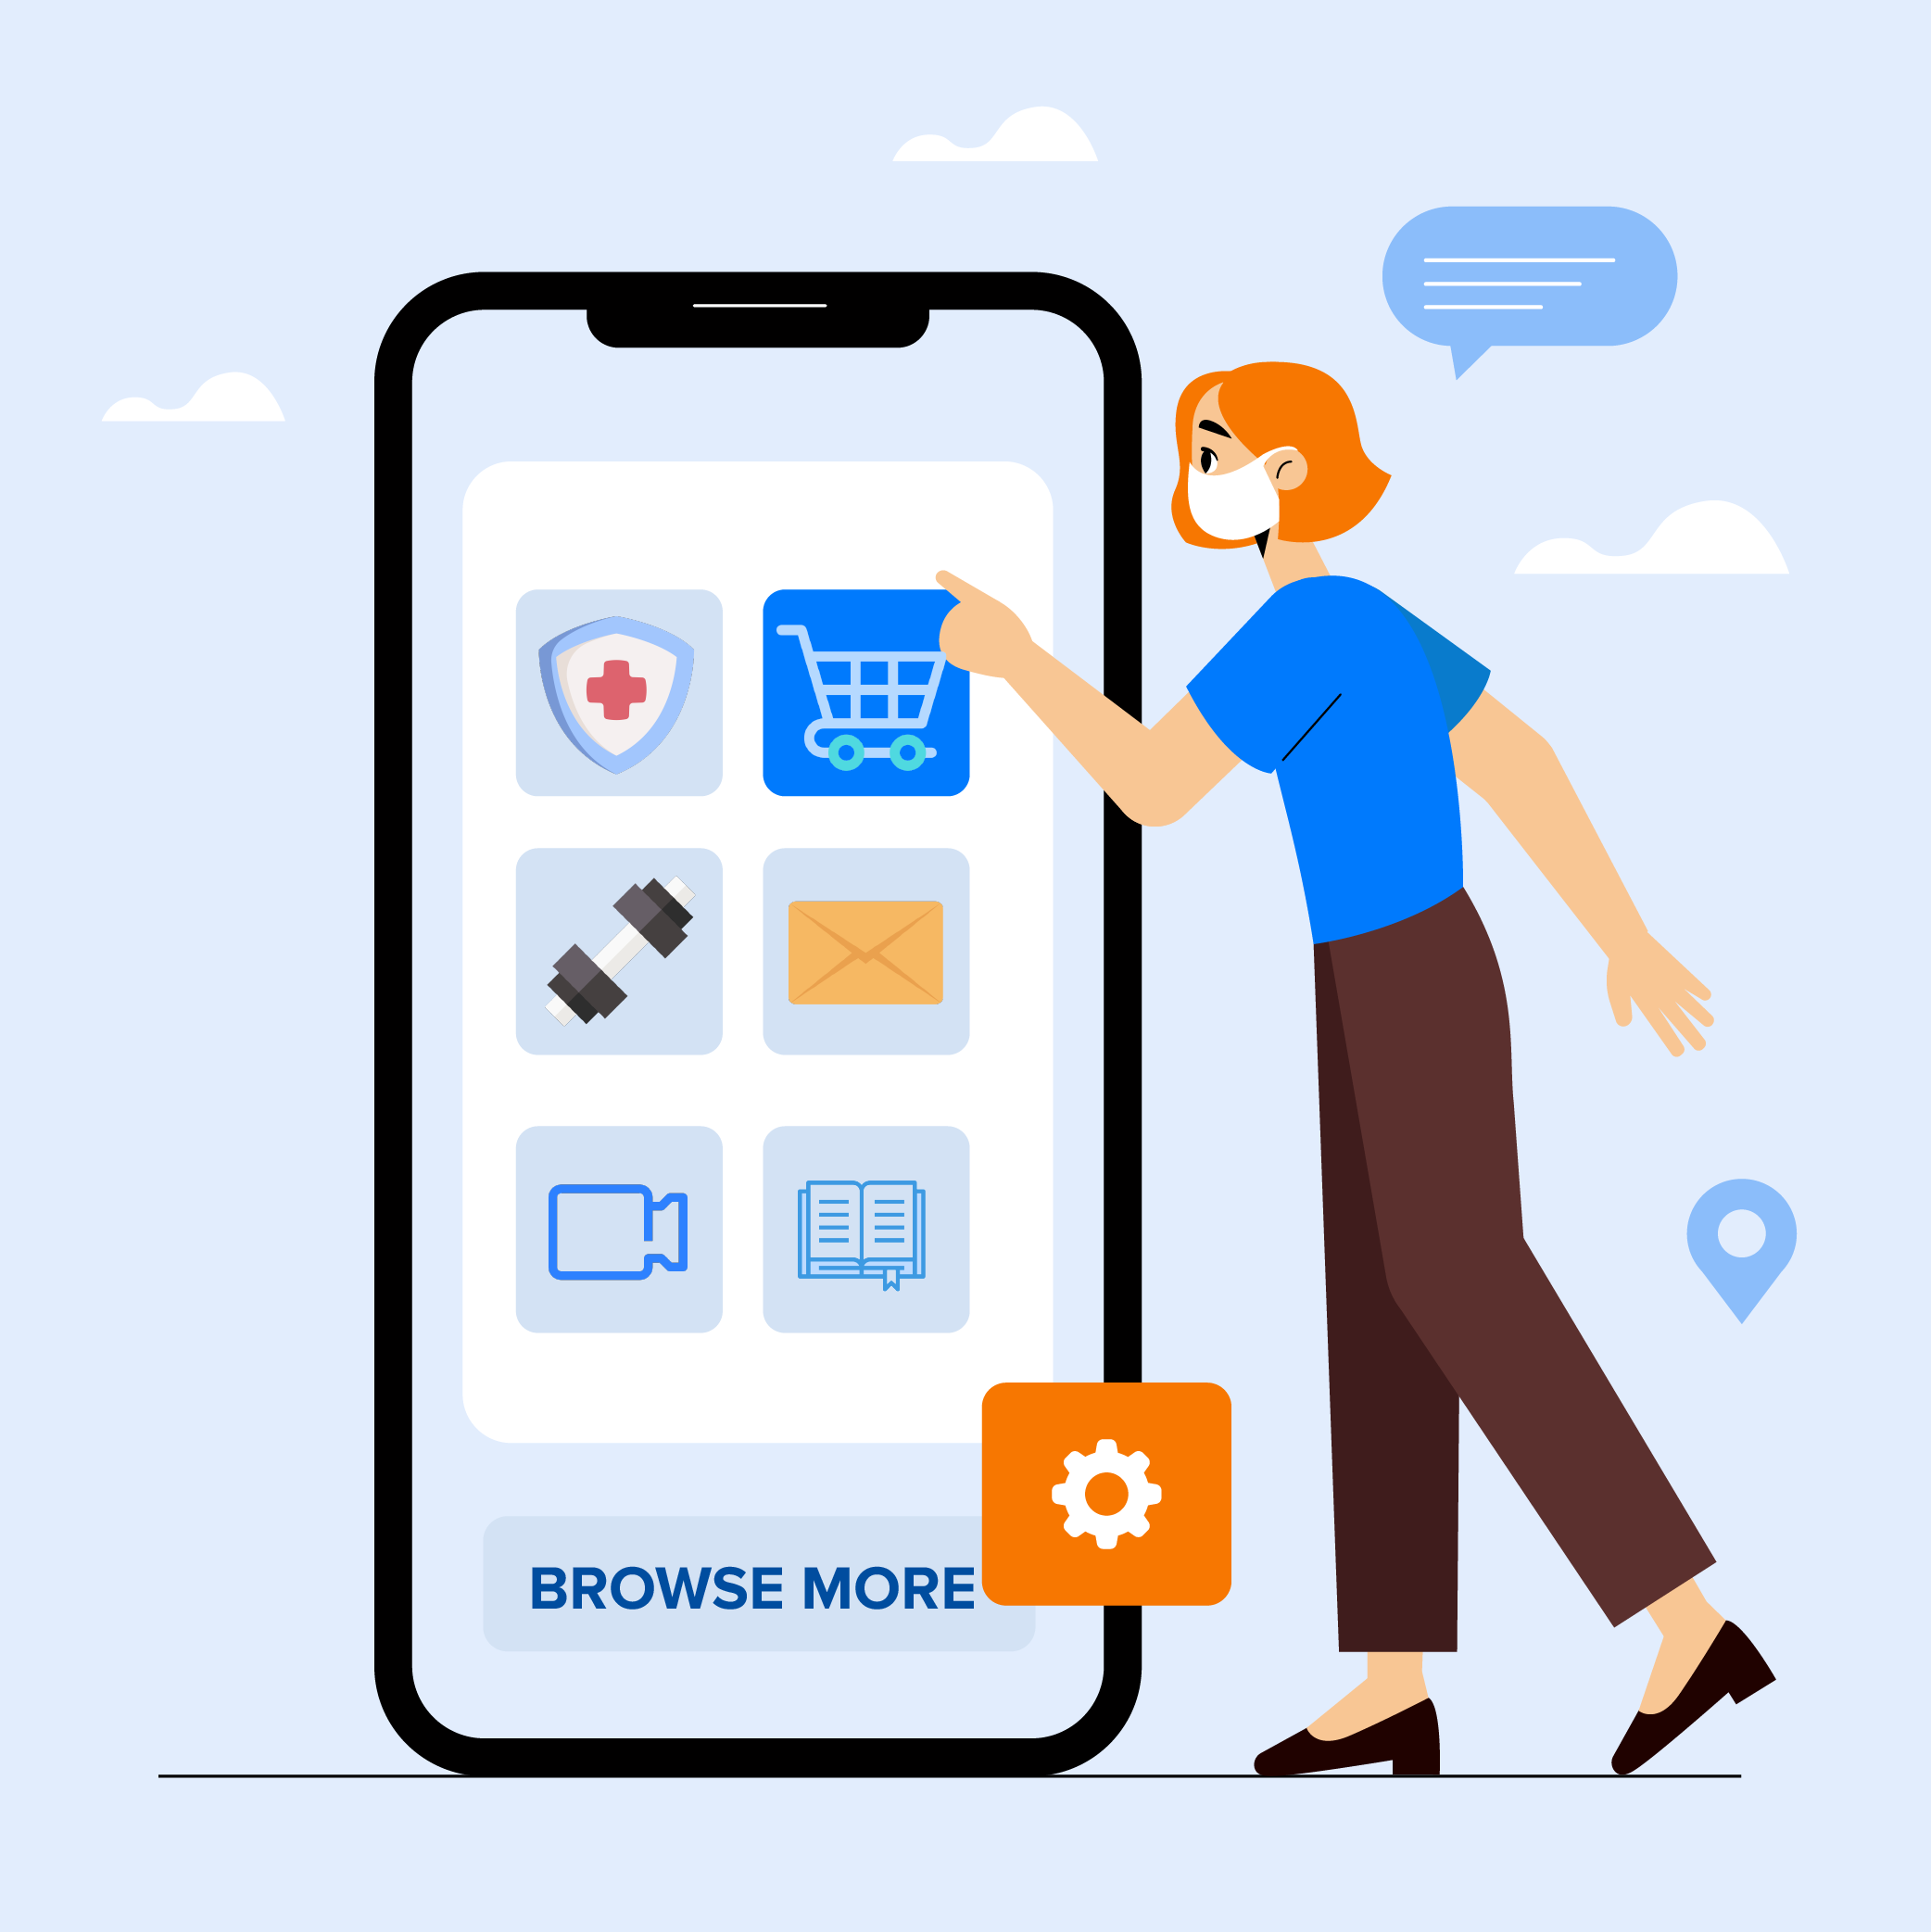 The Demand of Mobile Applications post Covid-19